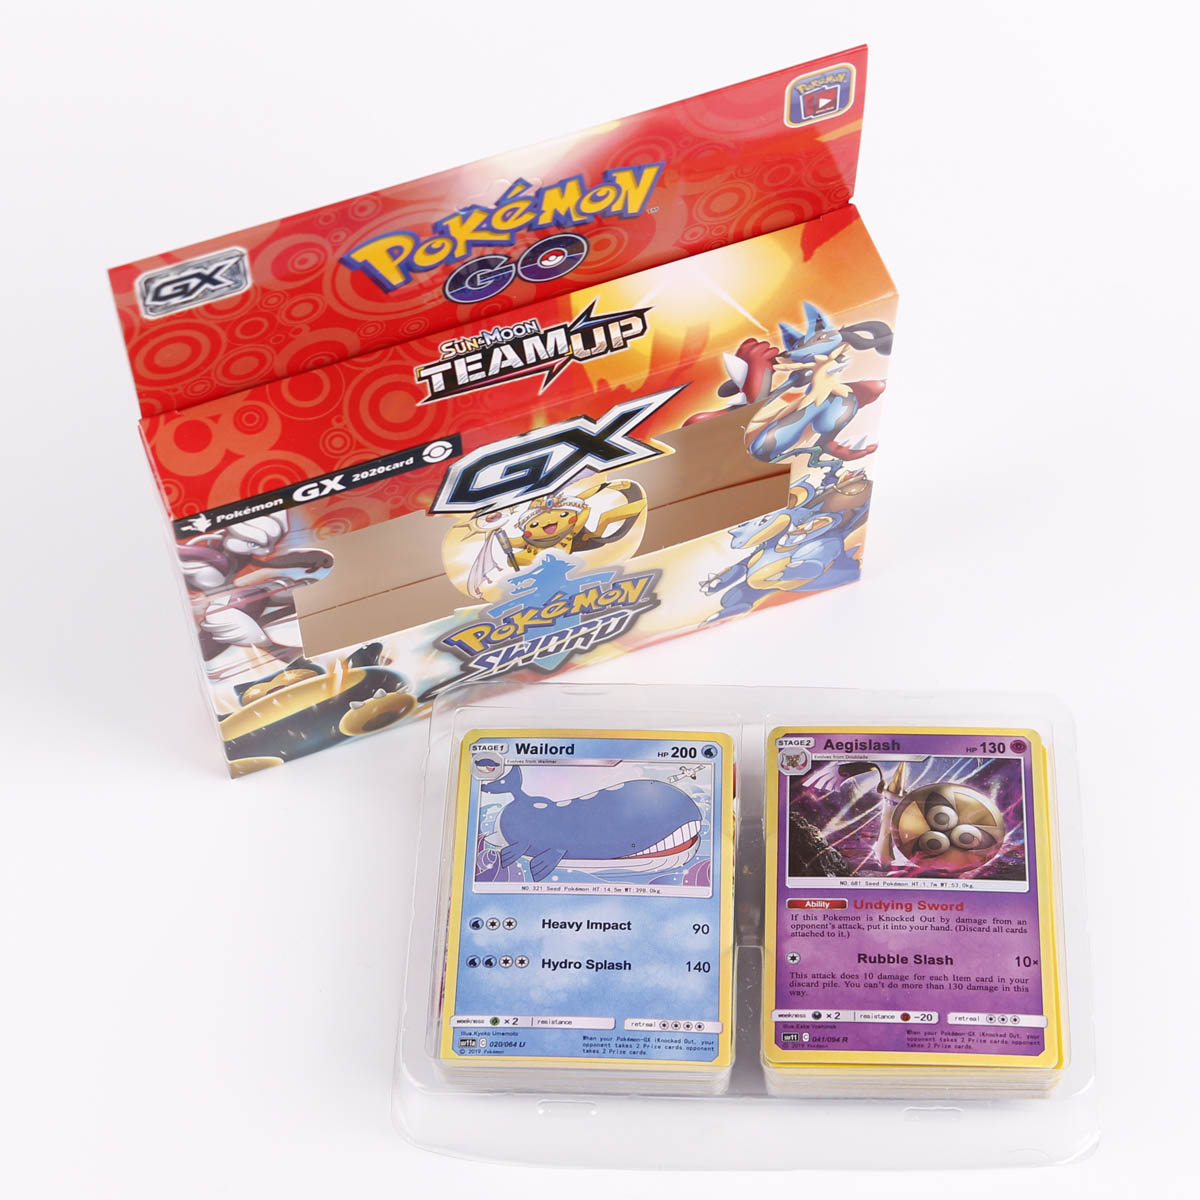 TOMY Pokemon 2020 Latest 54 Card Solitaire Pokemon Card Sword and Shield Box Trading Card Game Kids Collection Toys gift 1